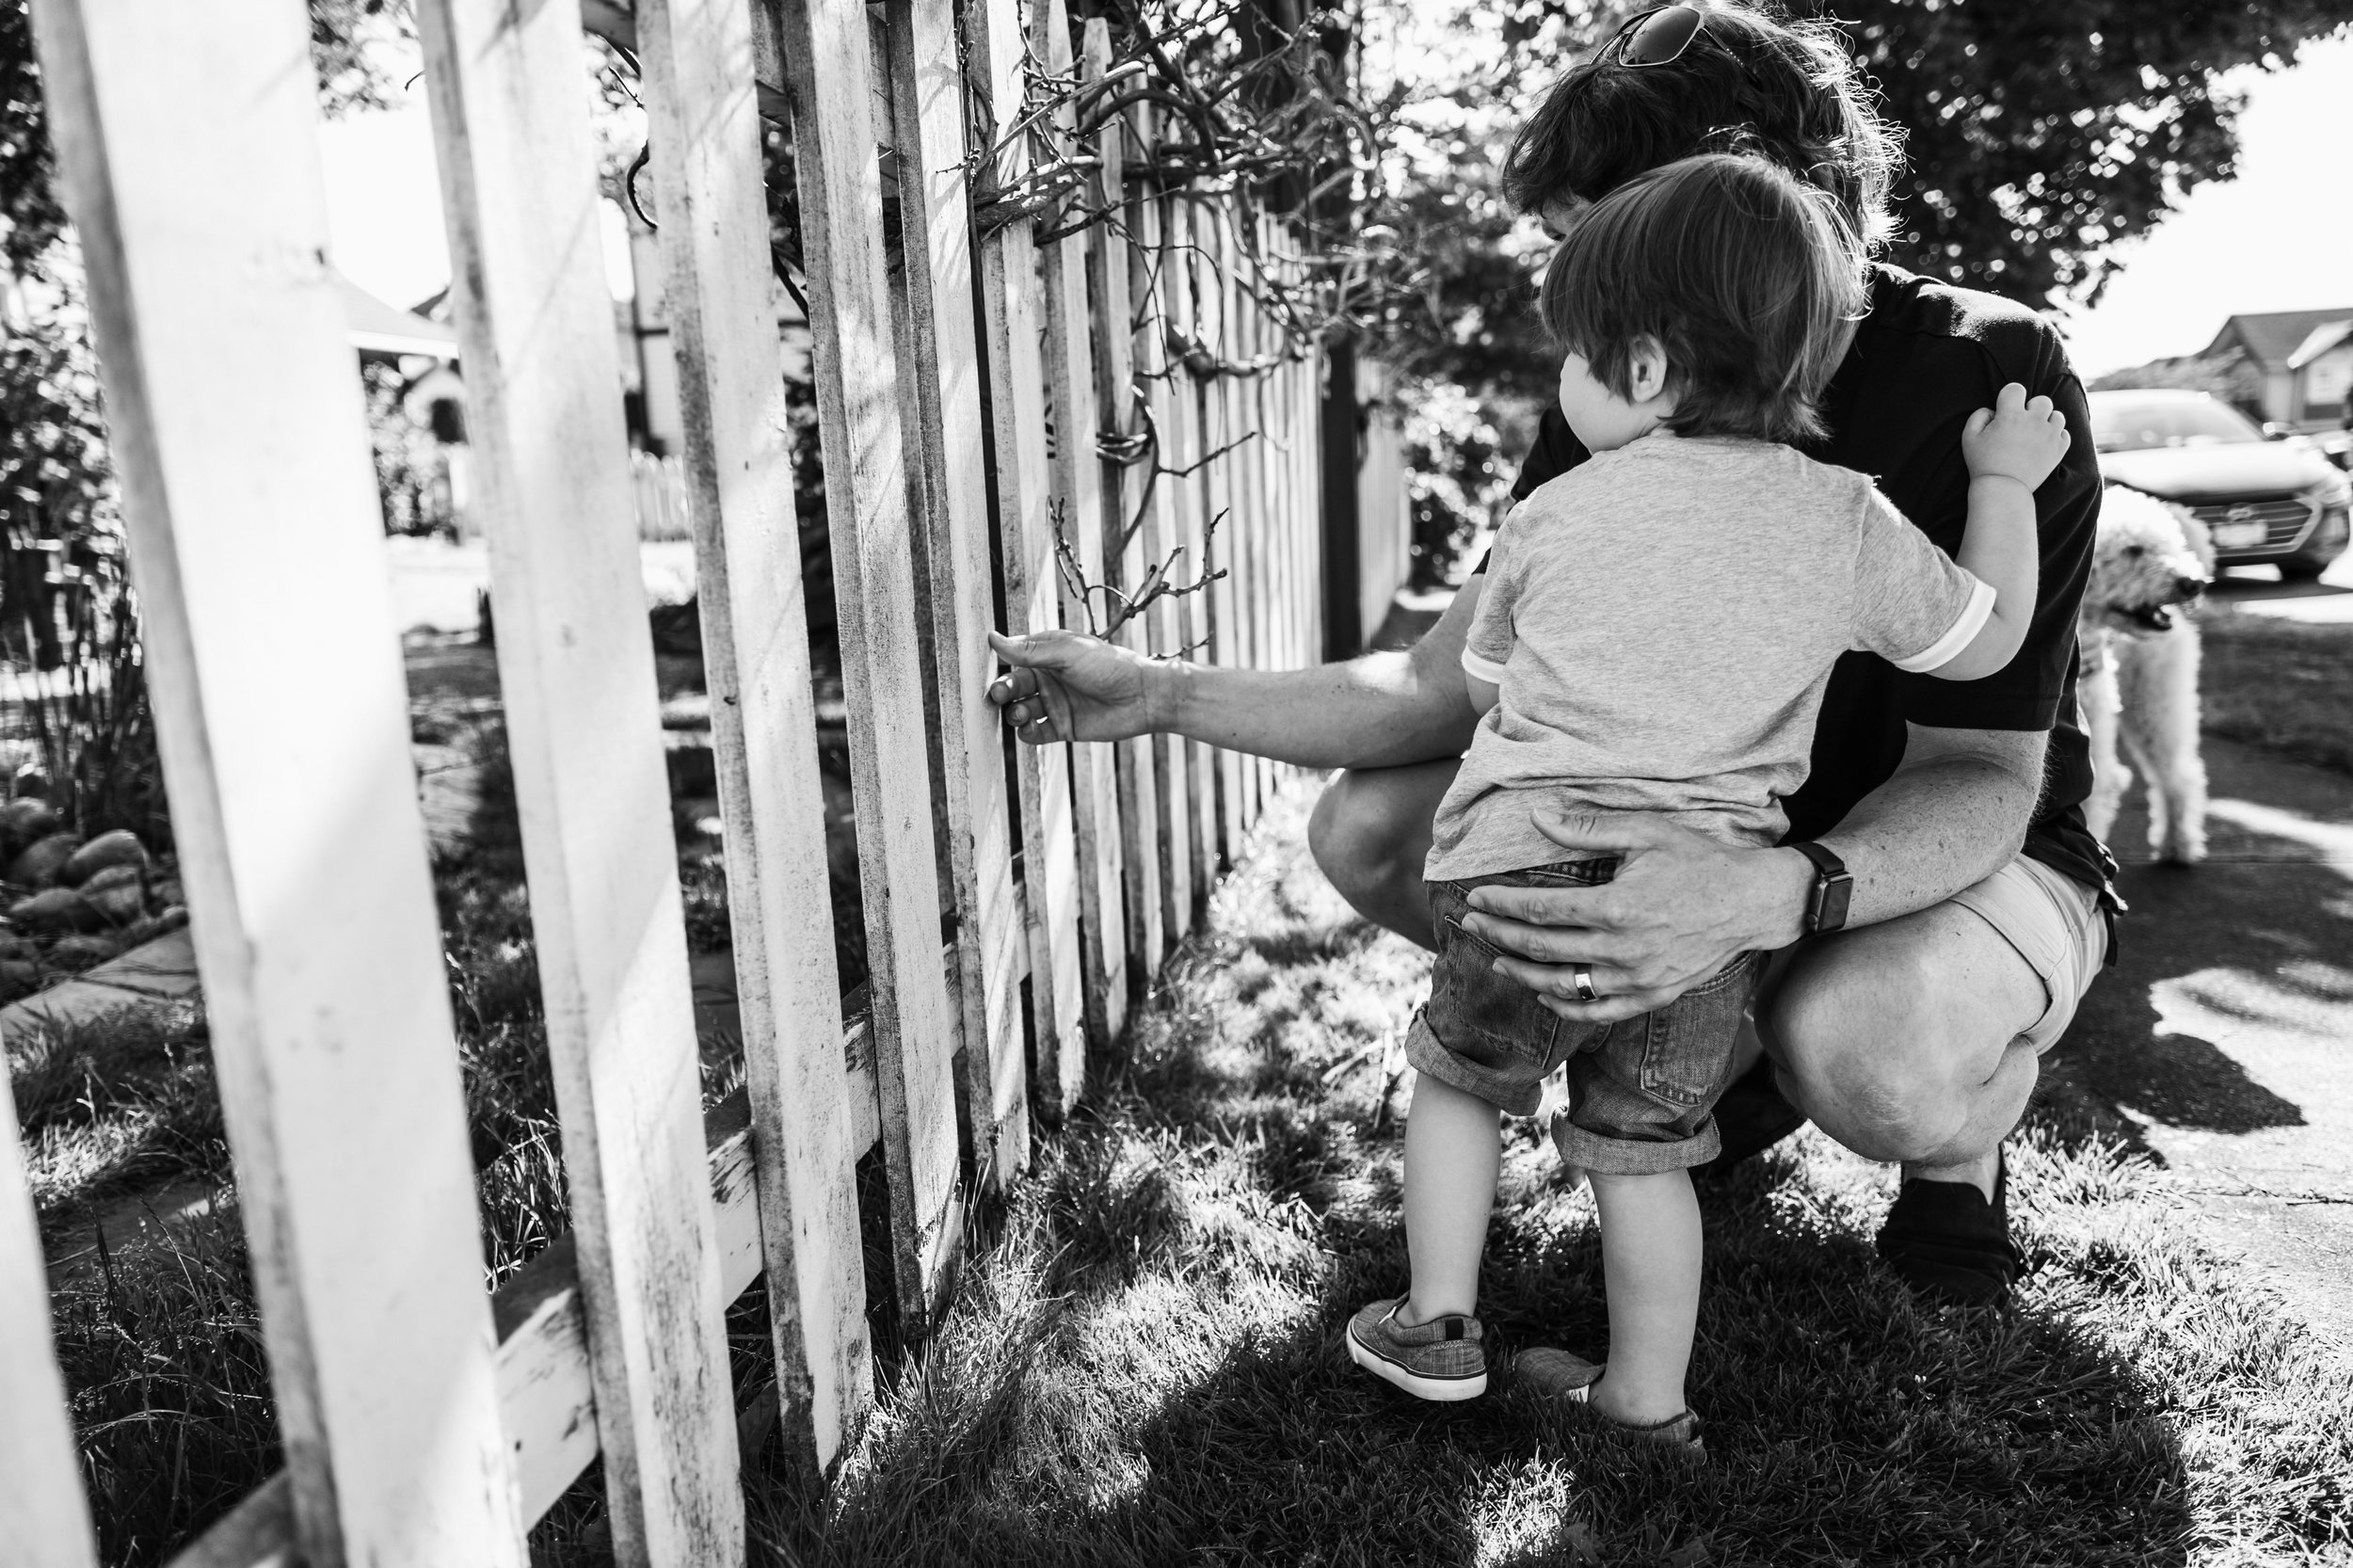 dad squatting down with young child looking through fence